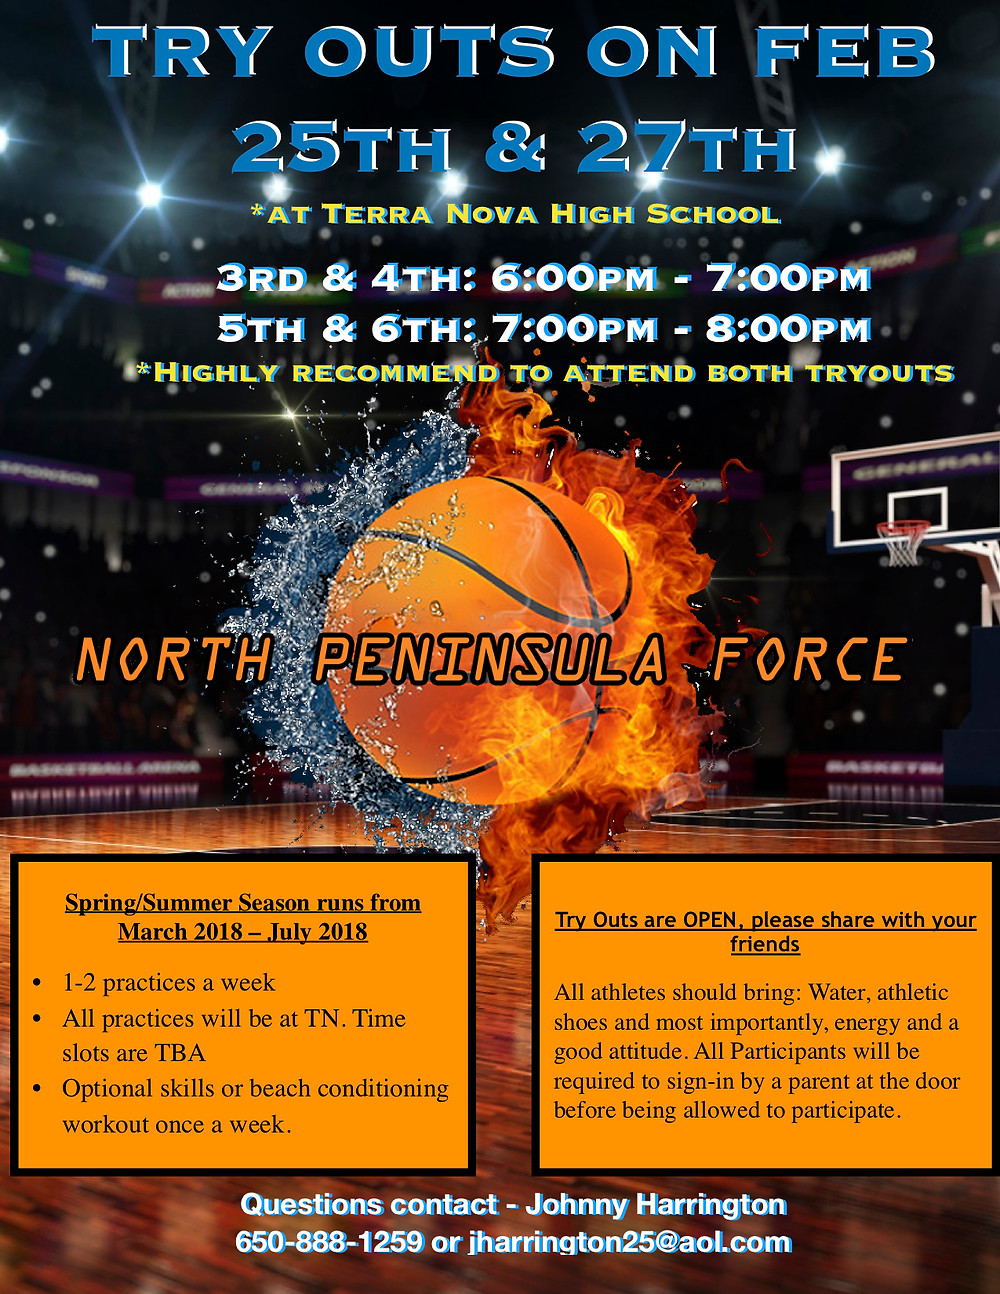 3rd & 4th: 6:00pm - 7:00pm  5th & 6th: 7:00pm - 8:00pm *Highly recommend to attend both tryouts